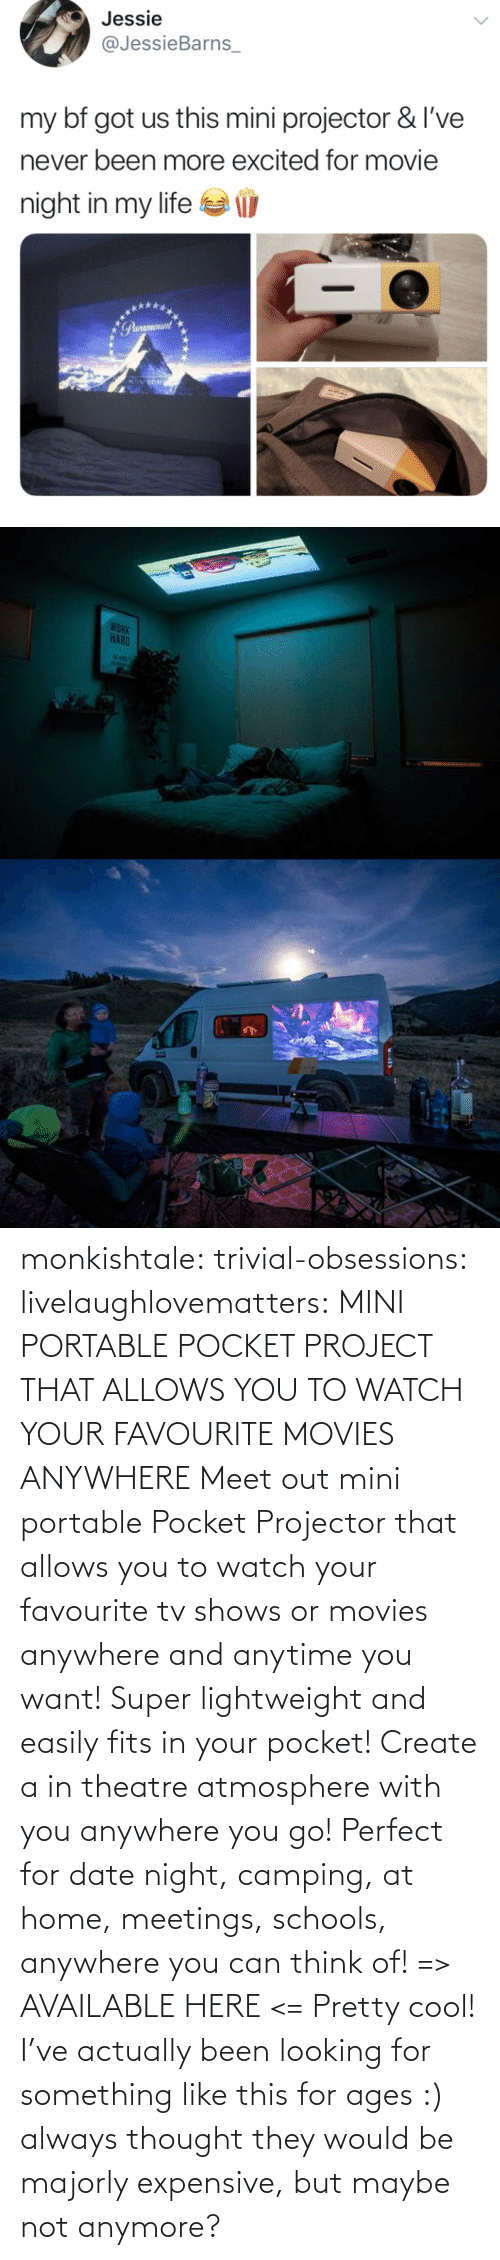 super: monkishtale: trivial-obsessions:   livelaughlovematters:   MINI PORTABLE POCKET PROJECT THAT ALLOWS YOU TO WATCH YOUR FAVOURITE MOVIES ANYWHERE Meet out mini portable Pocket Projector that allows you to watch your favourite tv shows or movies anywhere and anytime you want! Super lightweight and easily fits in your pocket! Create a in theatre atmosphere with you anywhere you go! Perfect for date night, camping, at home, meetings, schools, anywhere you can think of! => AVAILABLE HERE <=    Pretty cool!    I've actually been looking for something like this for ages :) always thought they would be majorly expensive, but maybe not anymore?